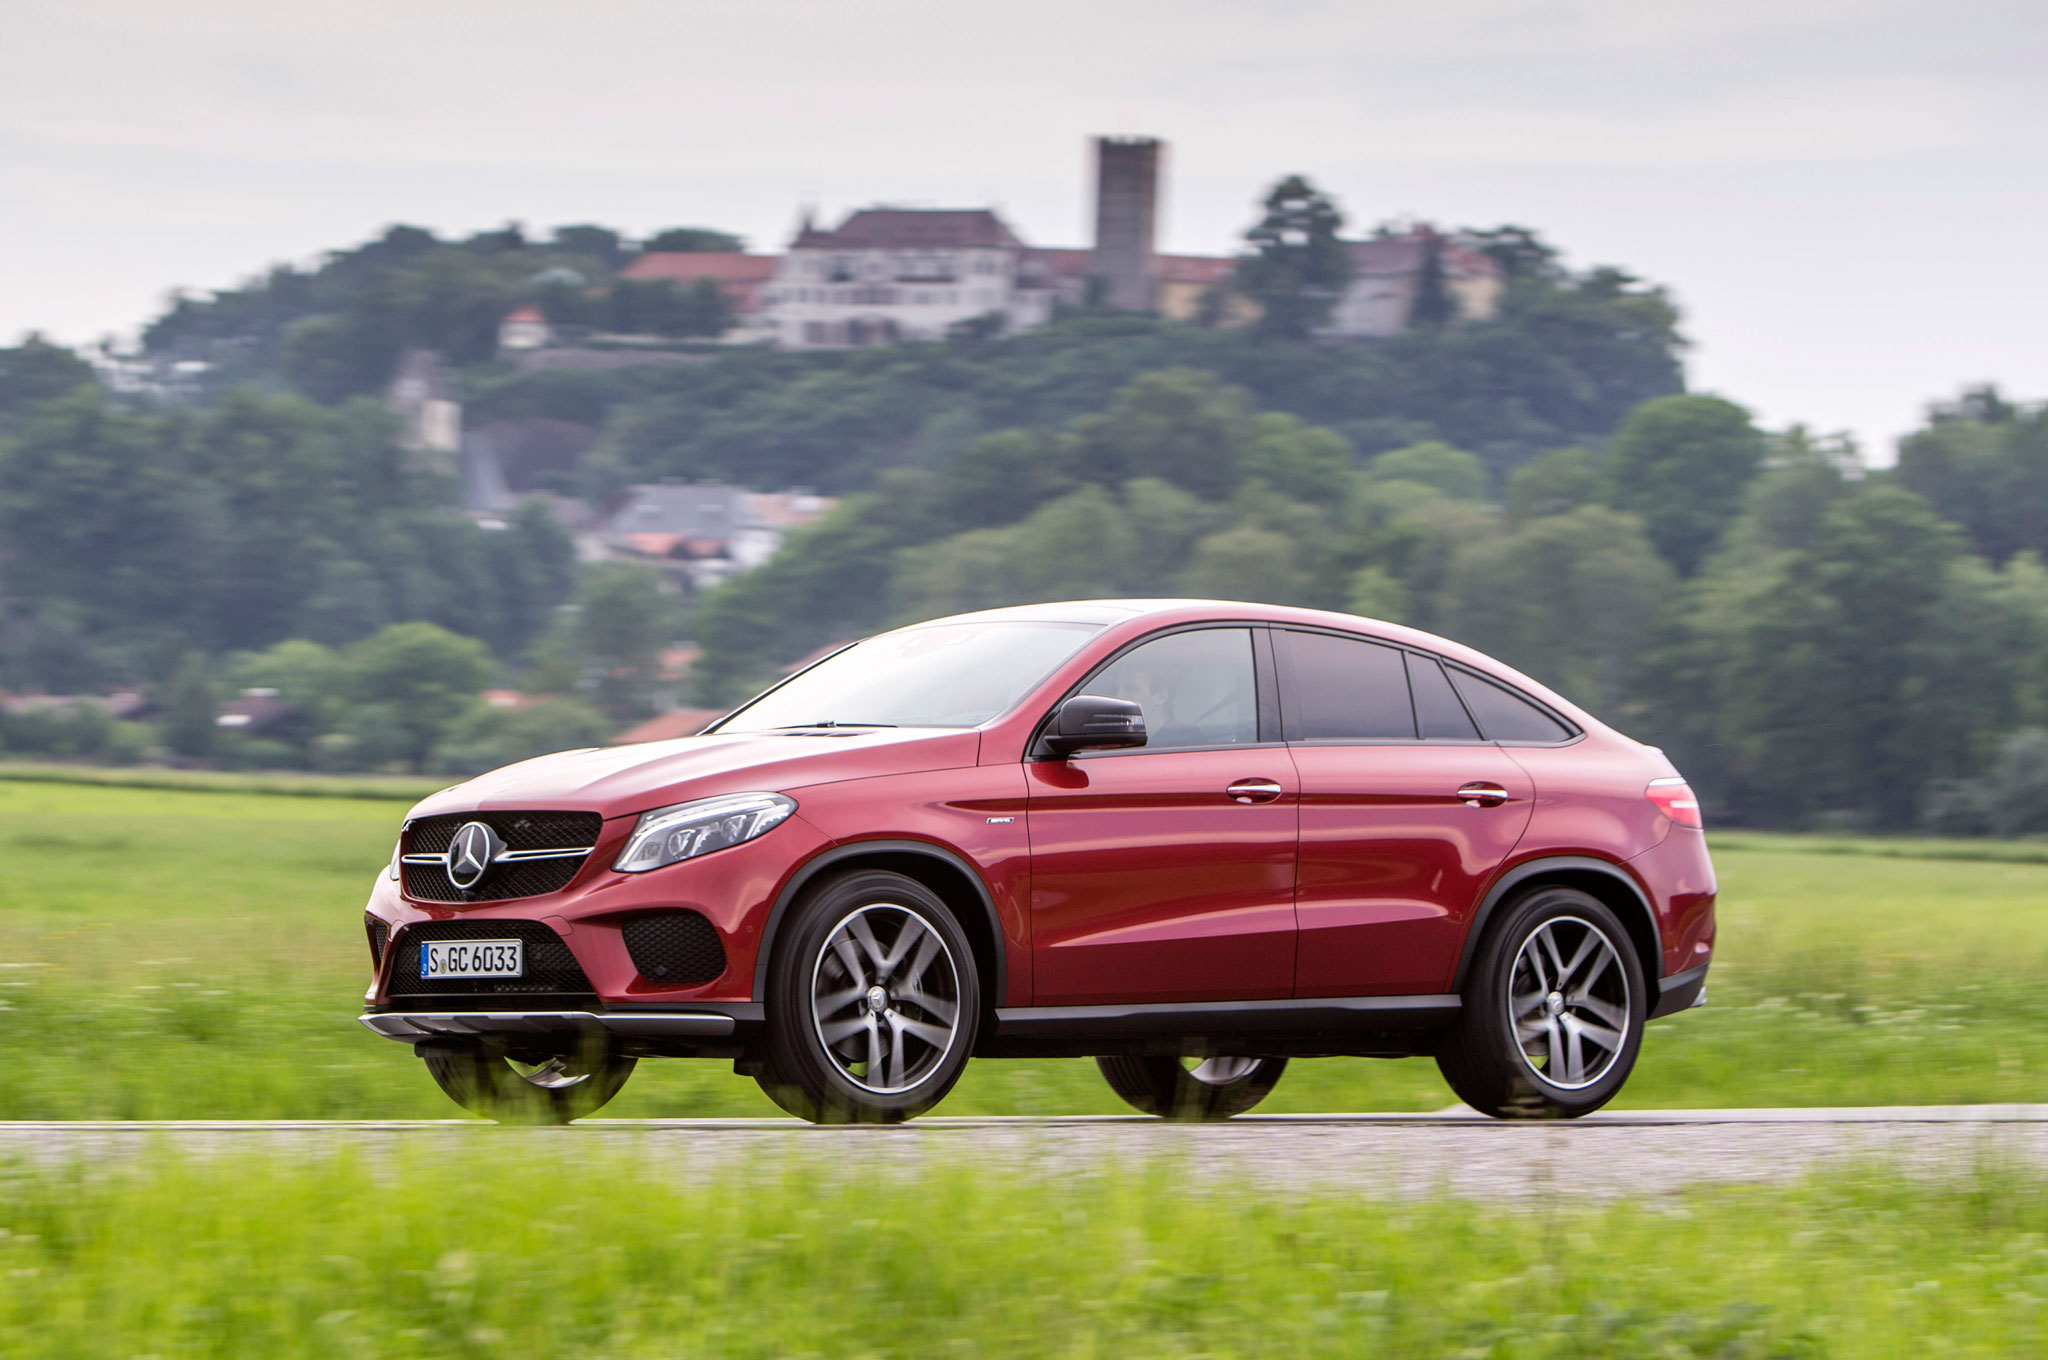 2016 mercedes benz gle450 amg 4matic coupe review. Black Bedroom Furniture Sets. Home Design Ideas